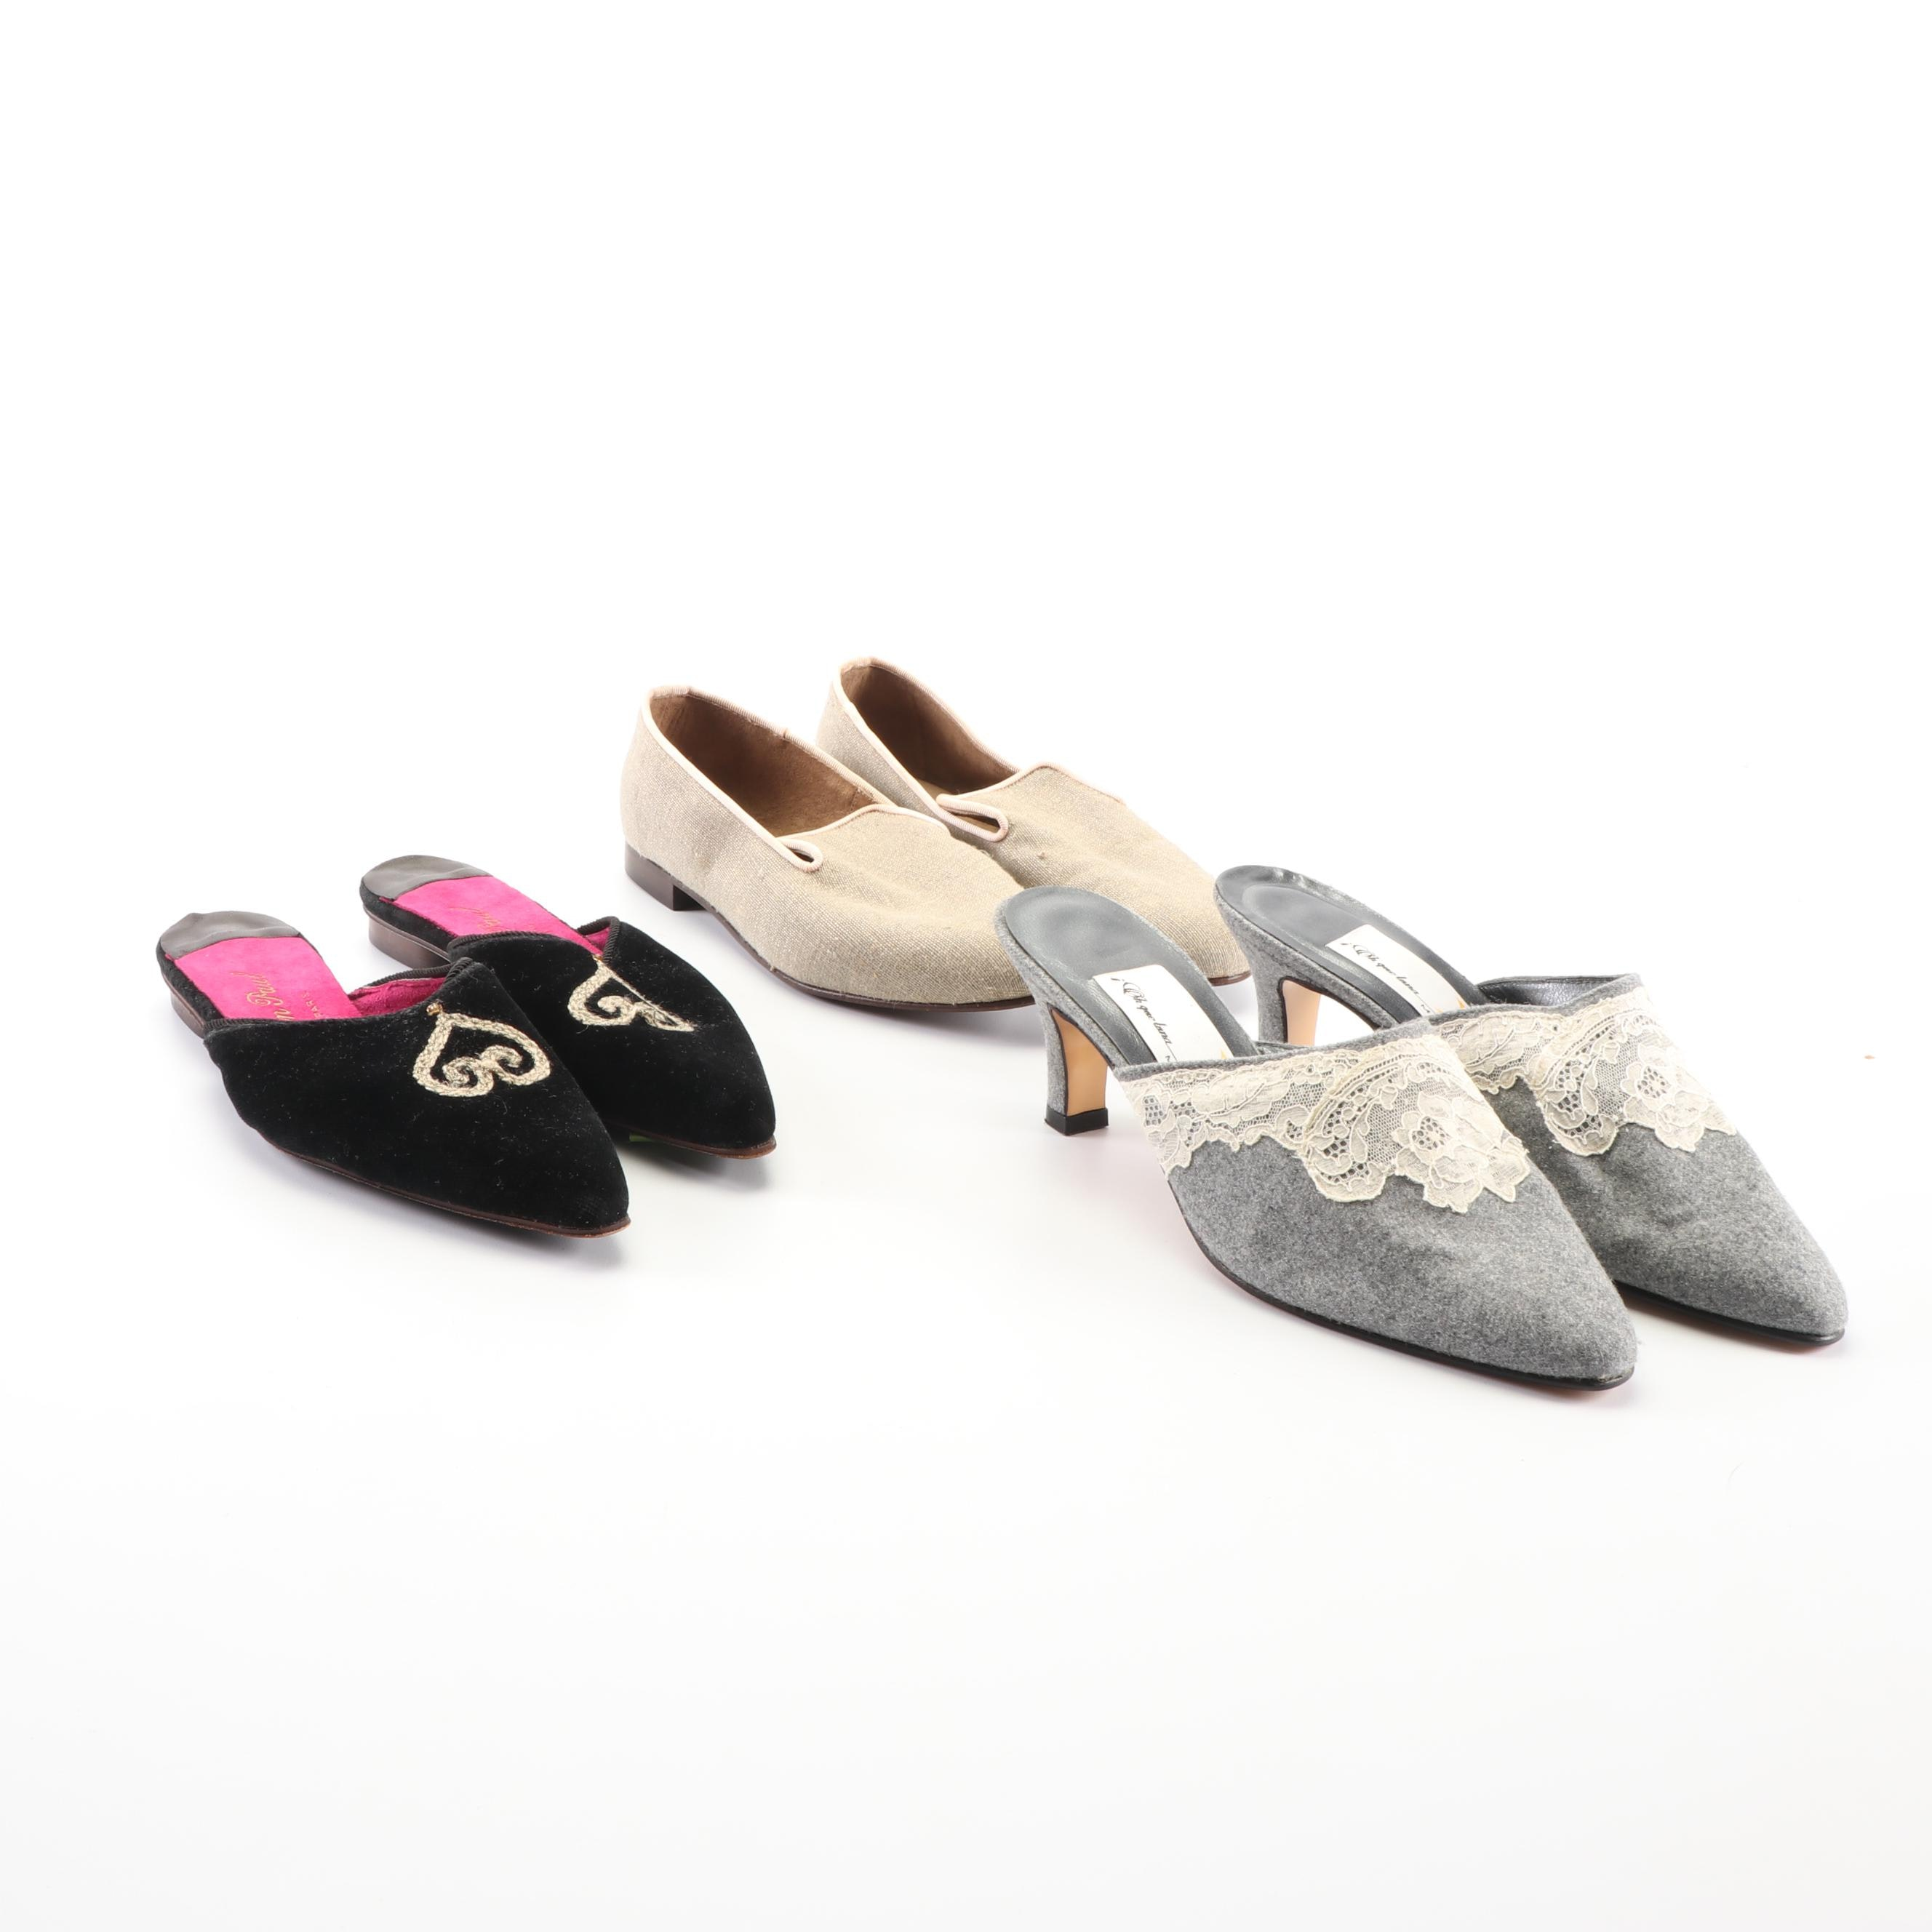 Evelyn Paul Paris and Oh Que Luna Madrid Mules and Loafers